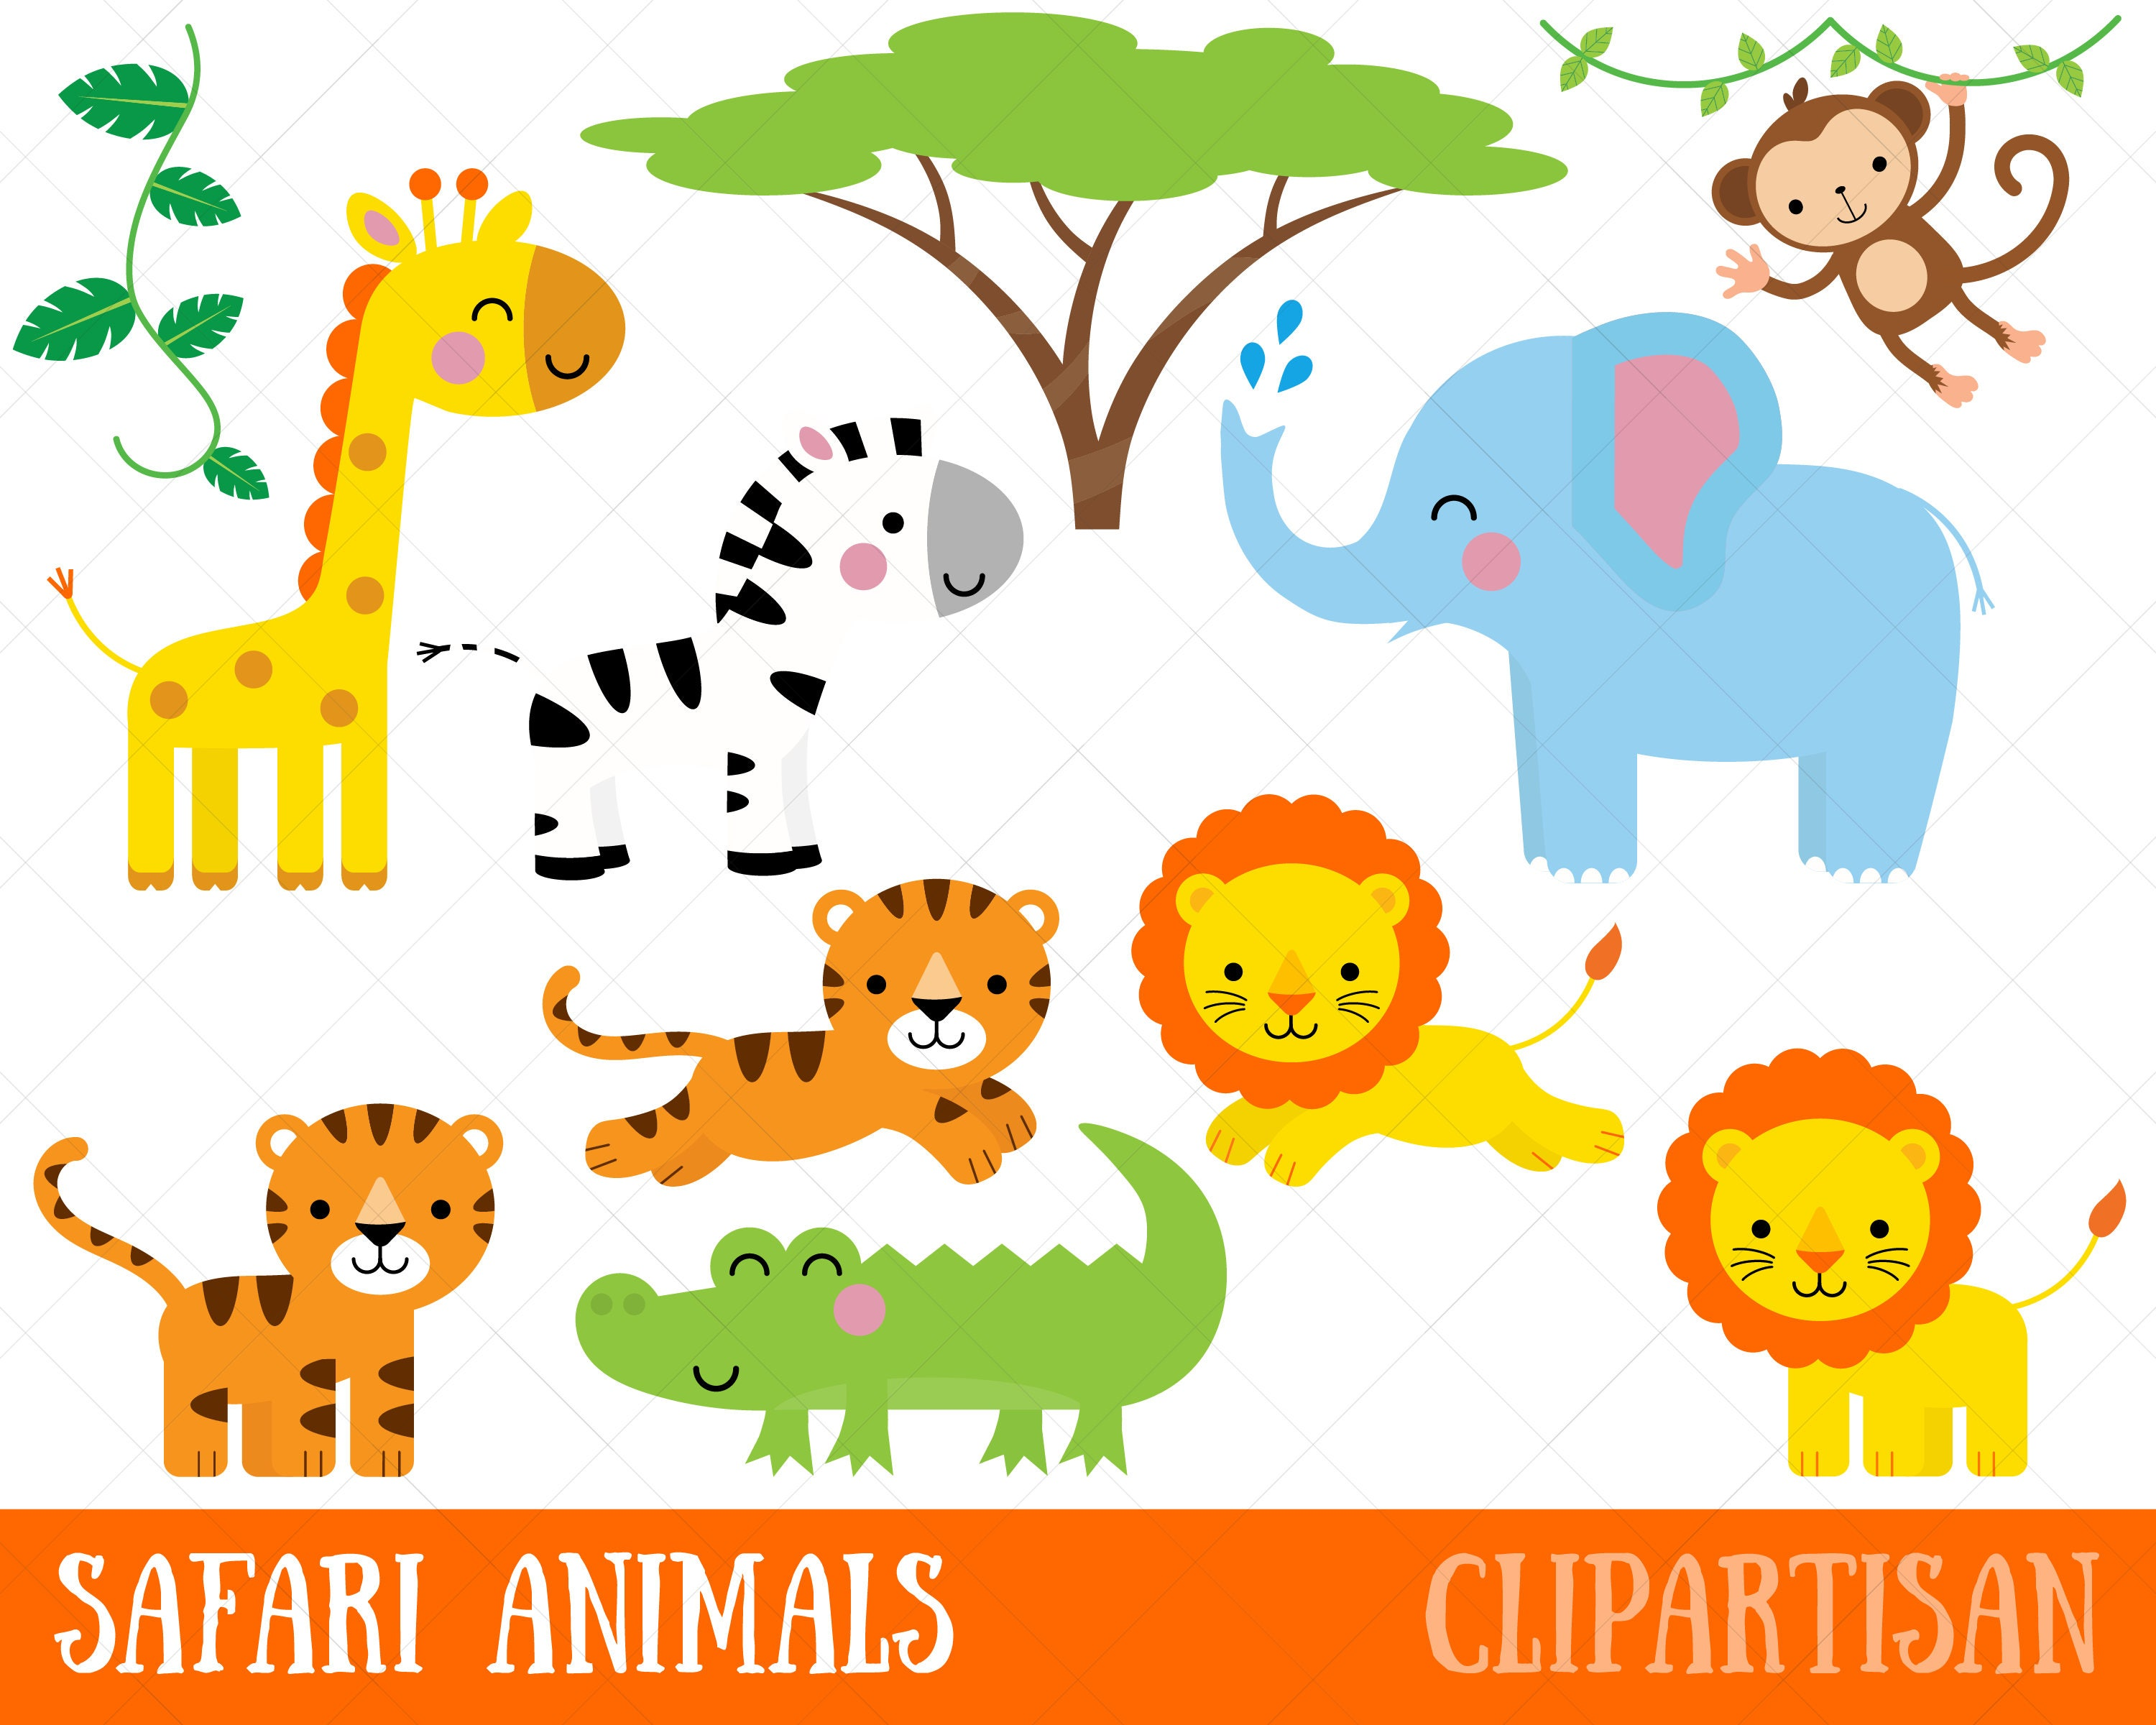 It's just an image of Playful Printable Jungle Animals